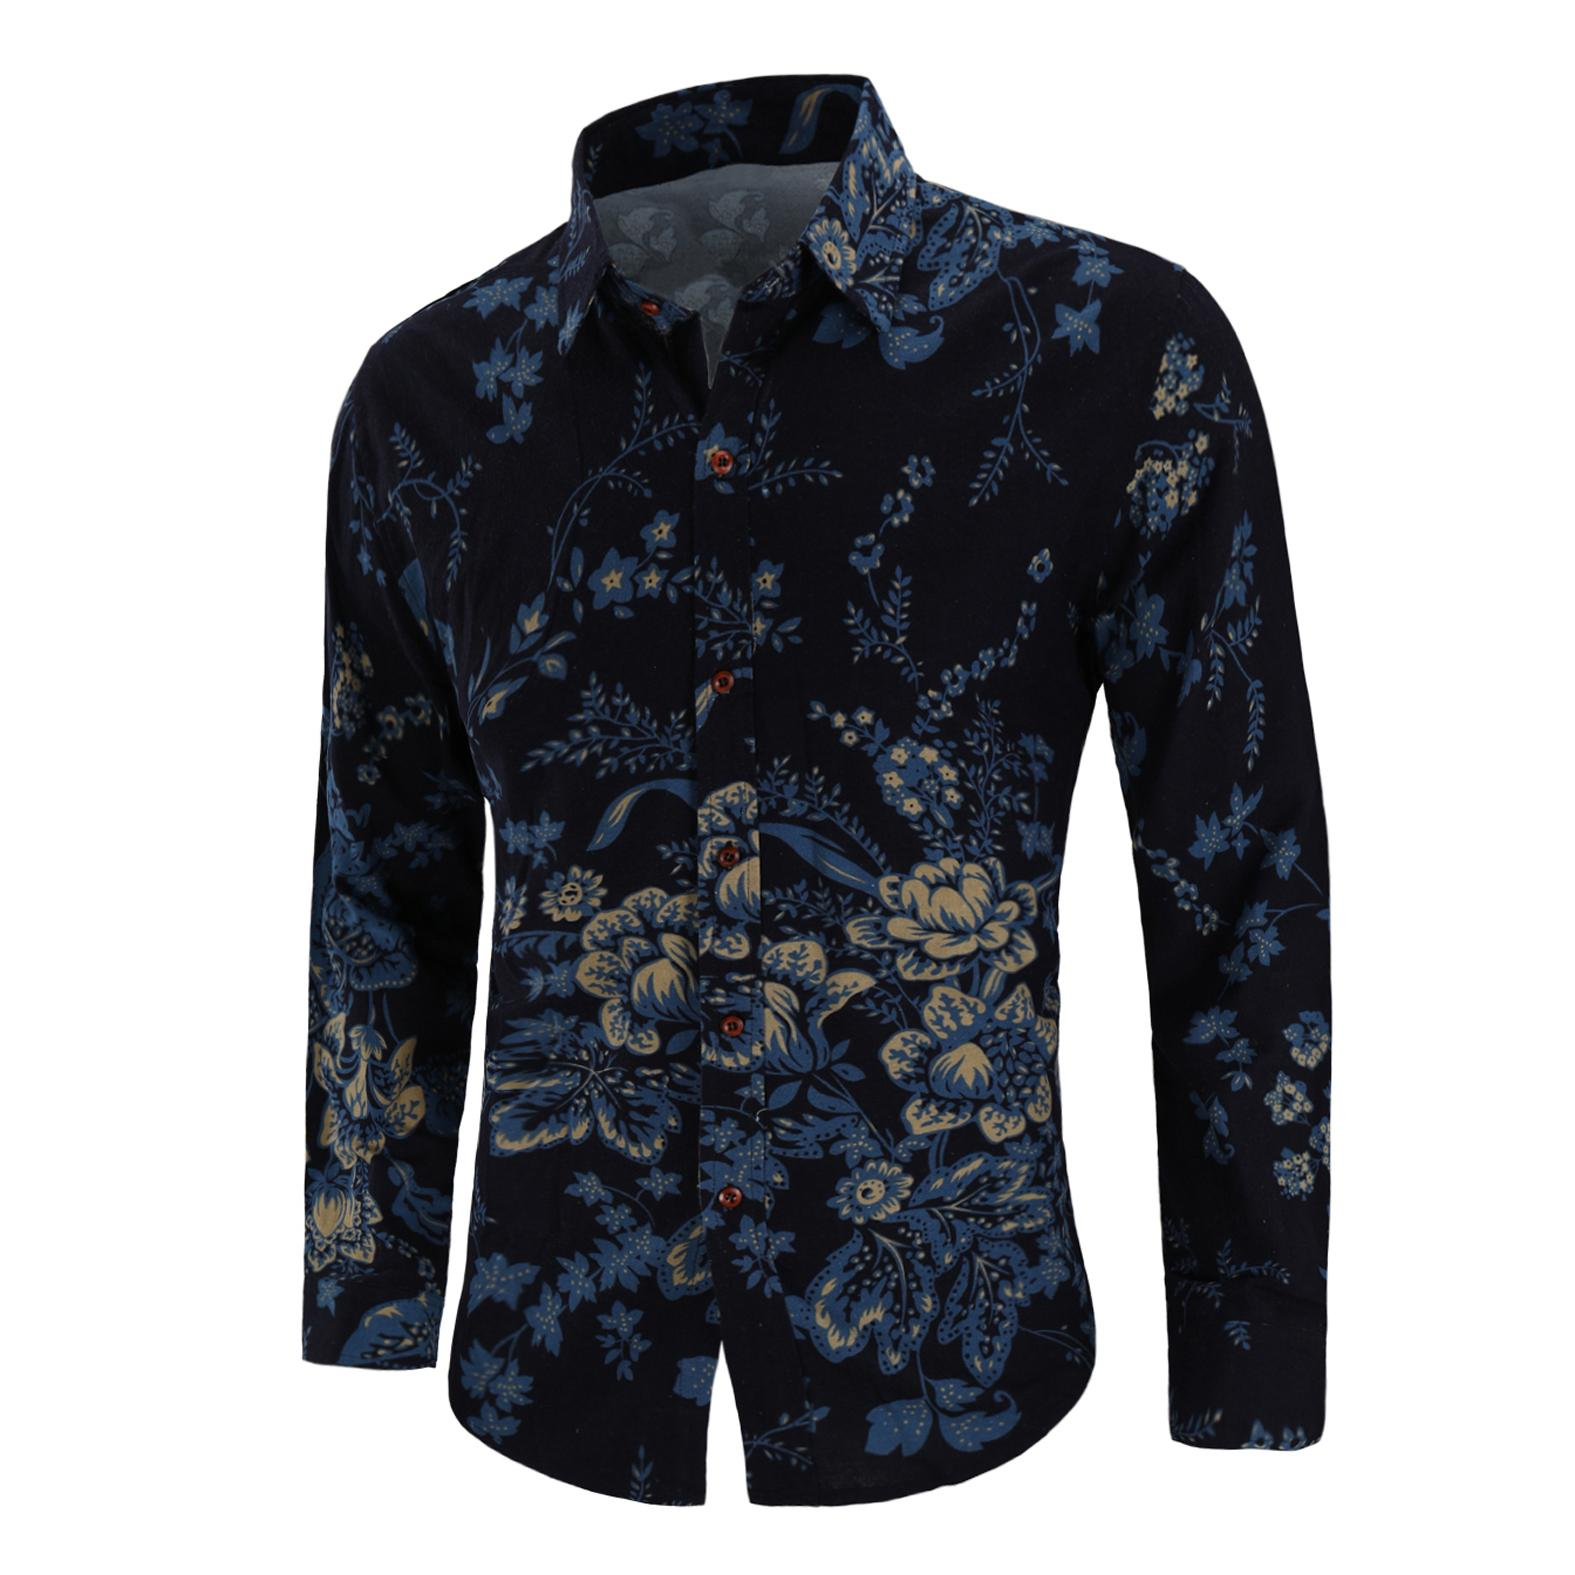 Floral Shirt Men Long sleeve Linen Shirts Men 39 s Clothes Fashion Flower Blouse Men Slim fit Summer New in Tank Tops from Men 39 s Clothing